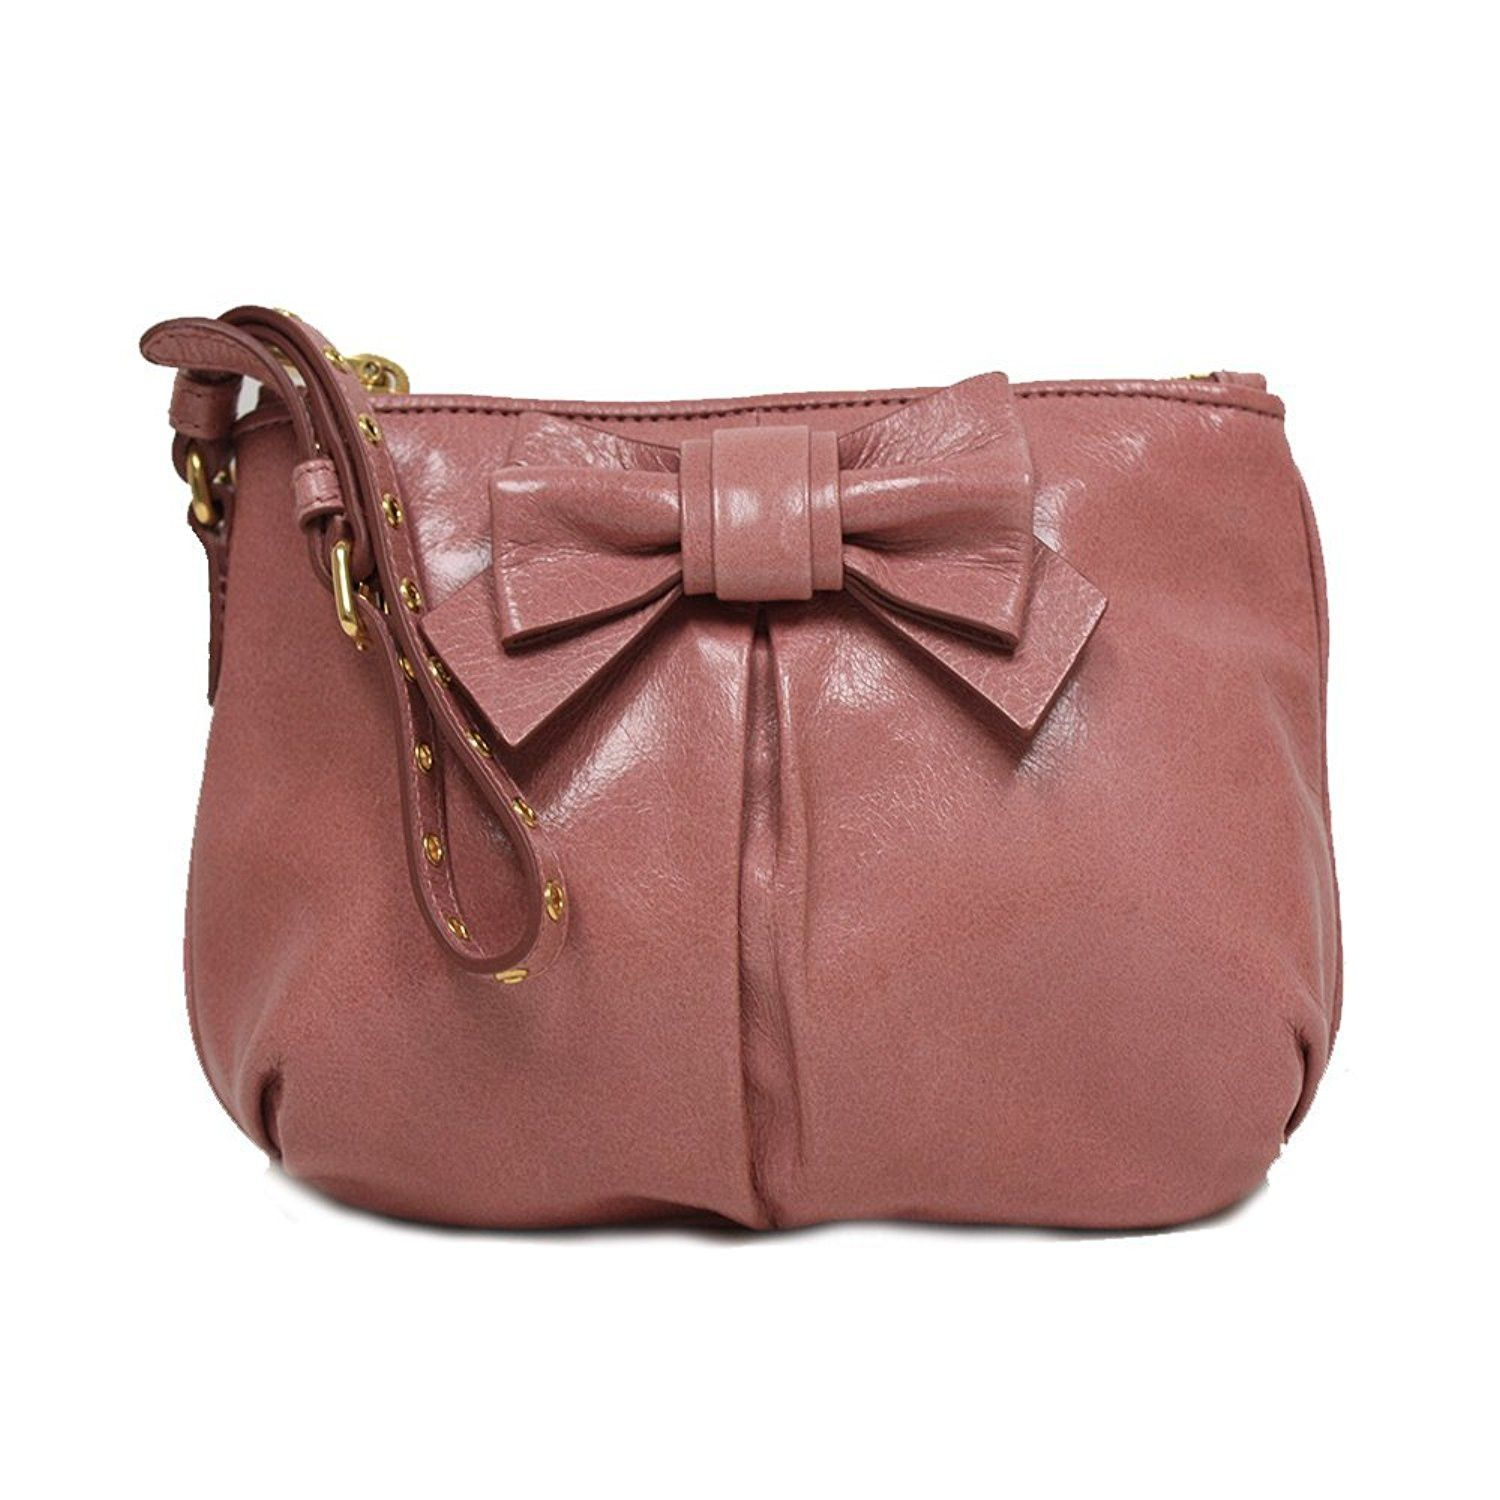 10b2ae2f764a Miu Miu. Leather MaterialPink LeatherSoft ...